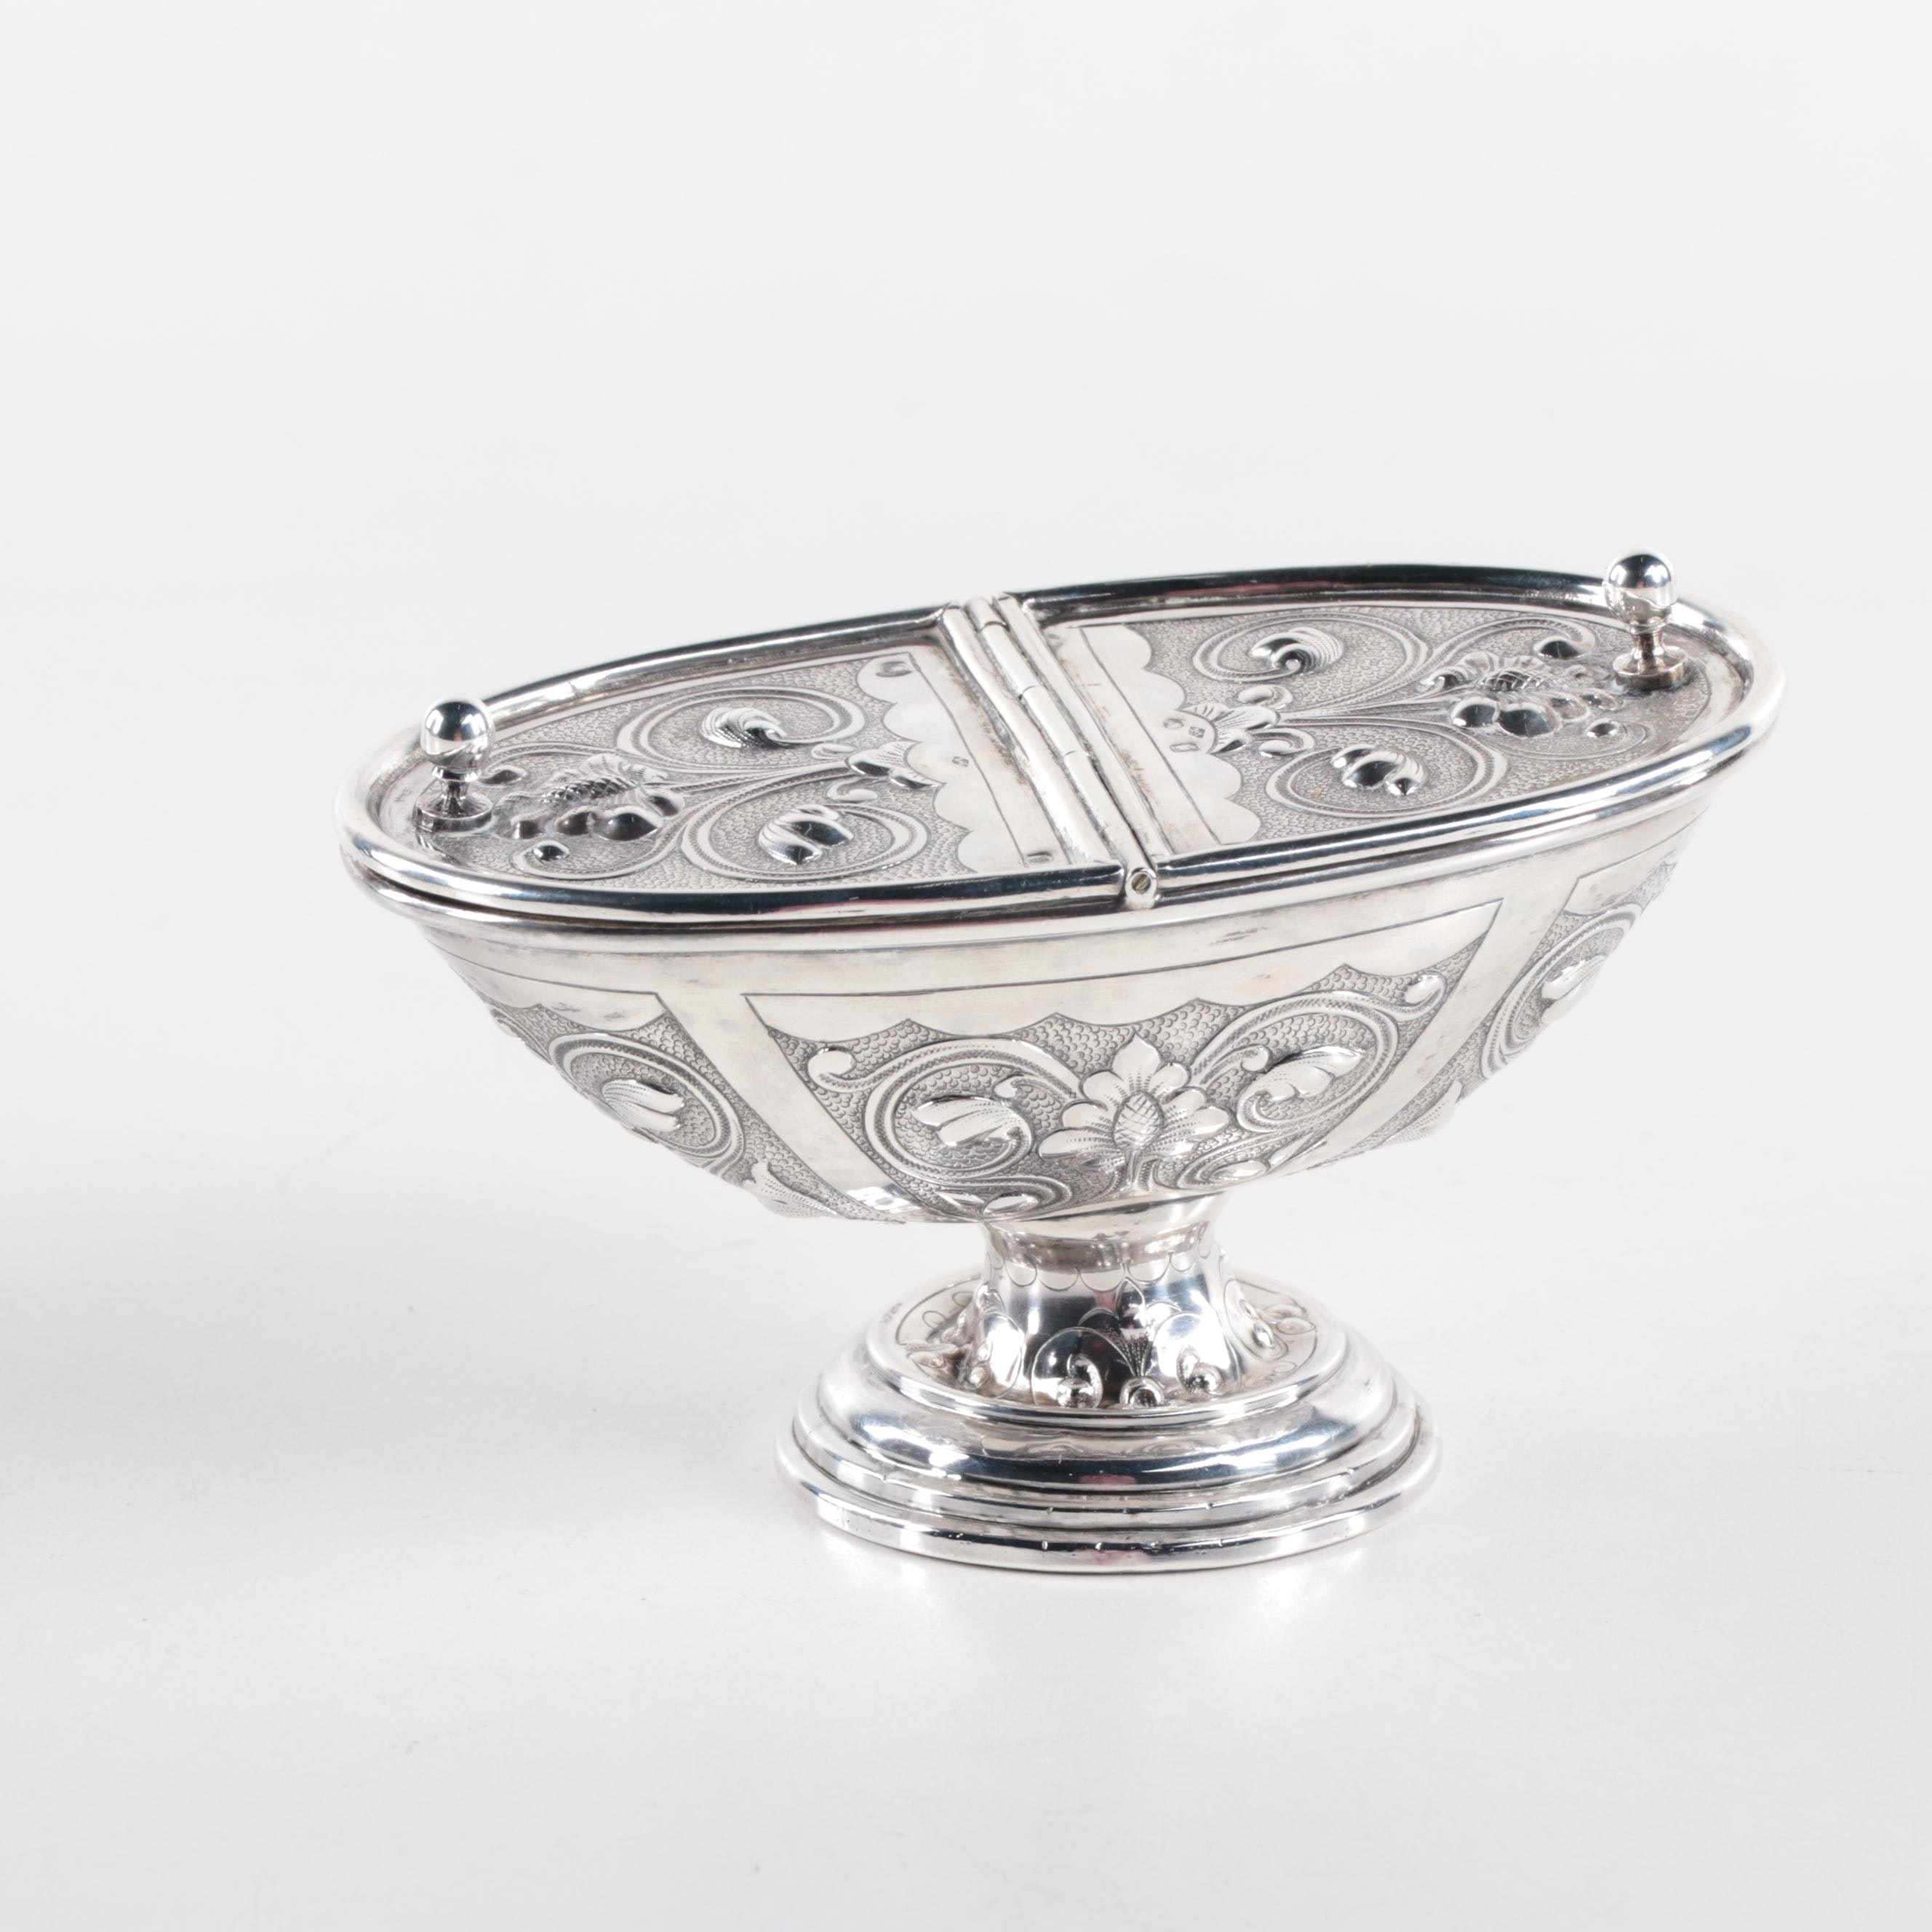 Lucie Goldstein French 950 Silver Lidded Repoussé Sugar Dish, Late 19th Century